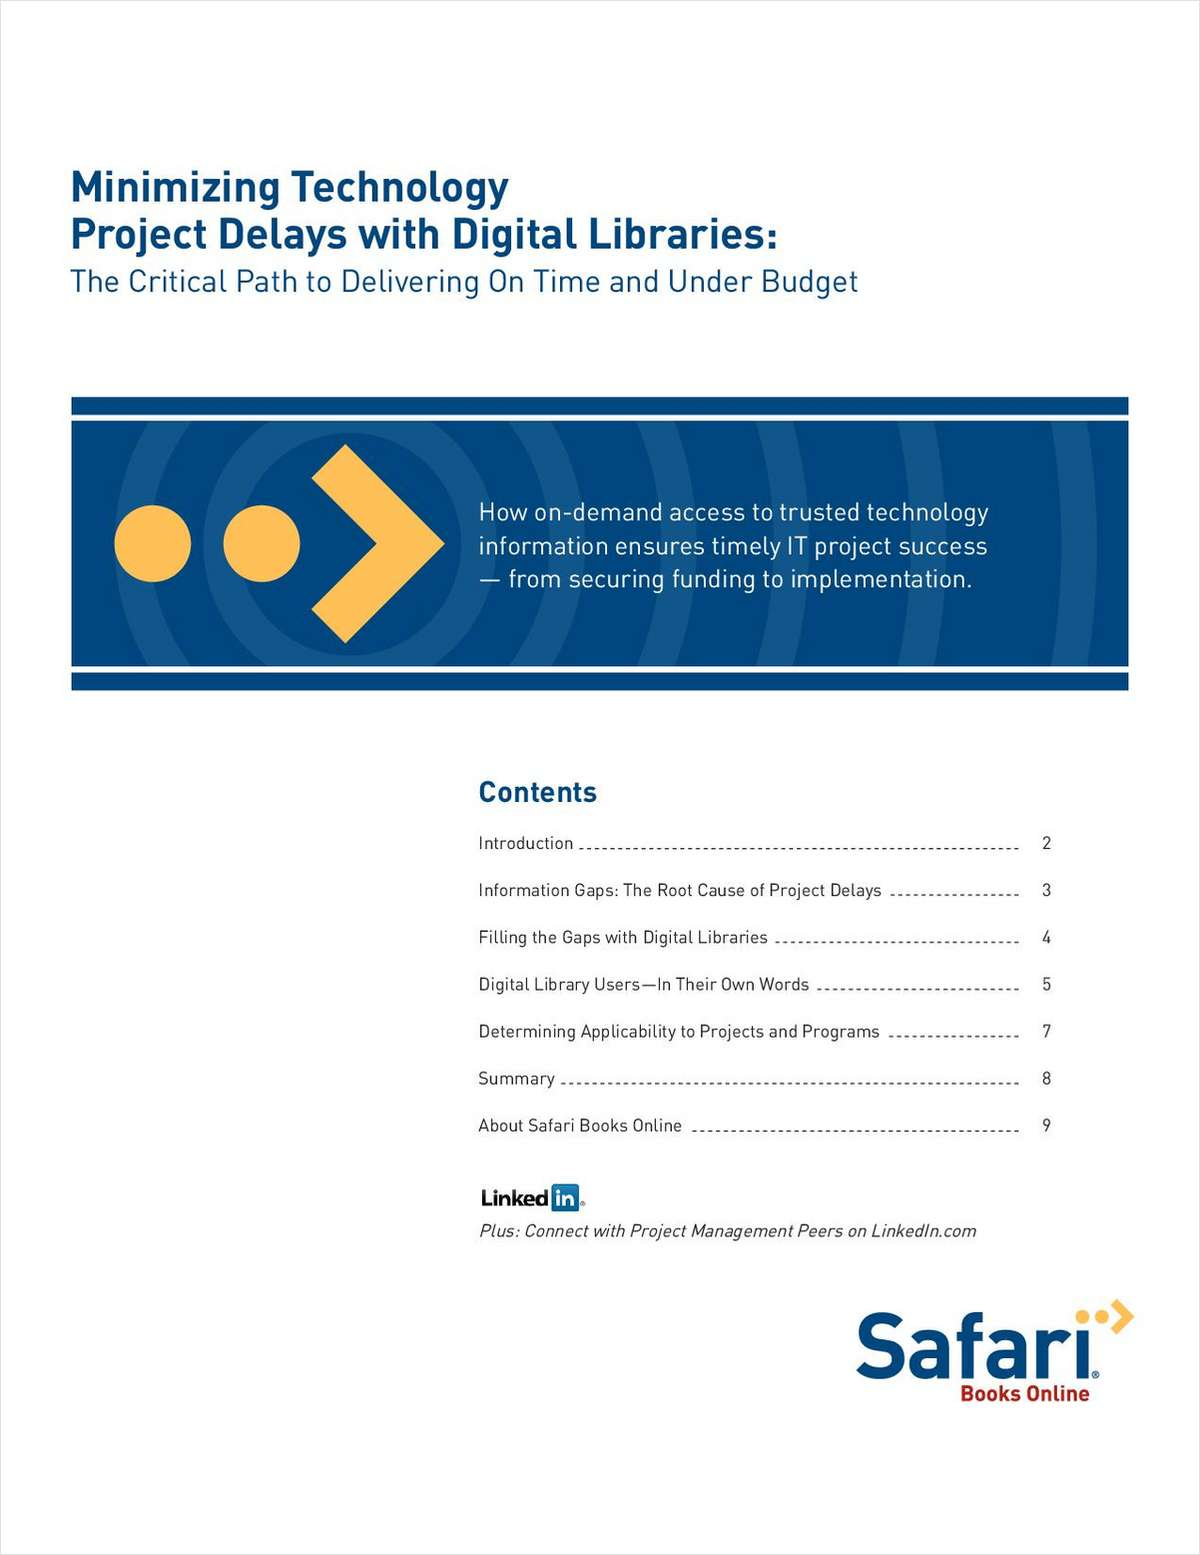 Minimizing Technology Project Delays with Digital Libraries: The Critical Path to Delivering On Time and Under Budget